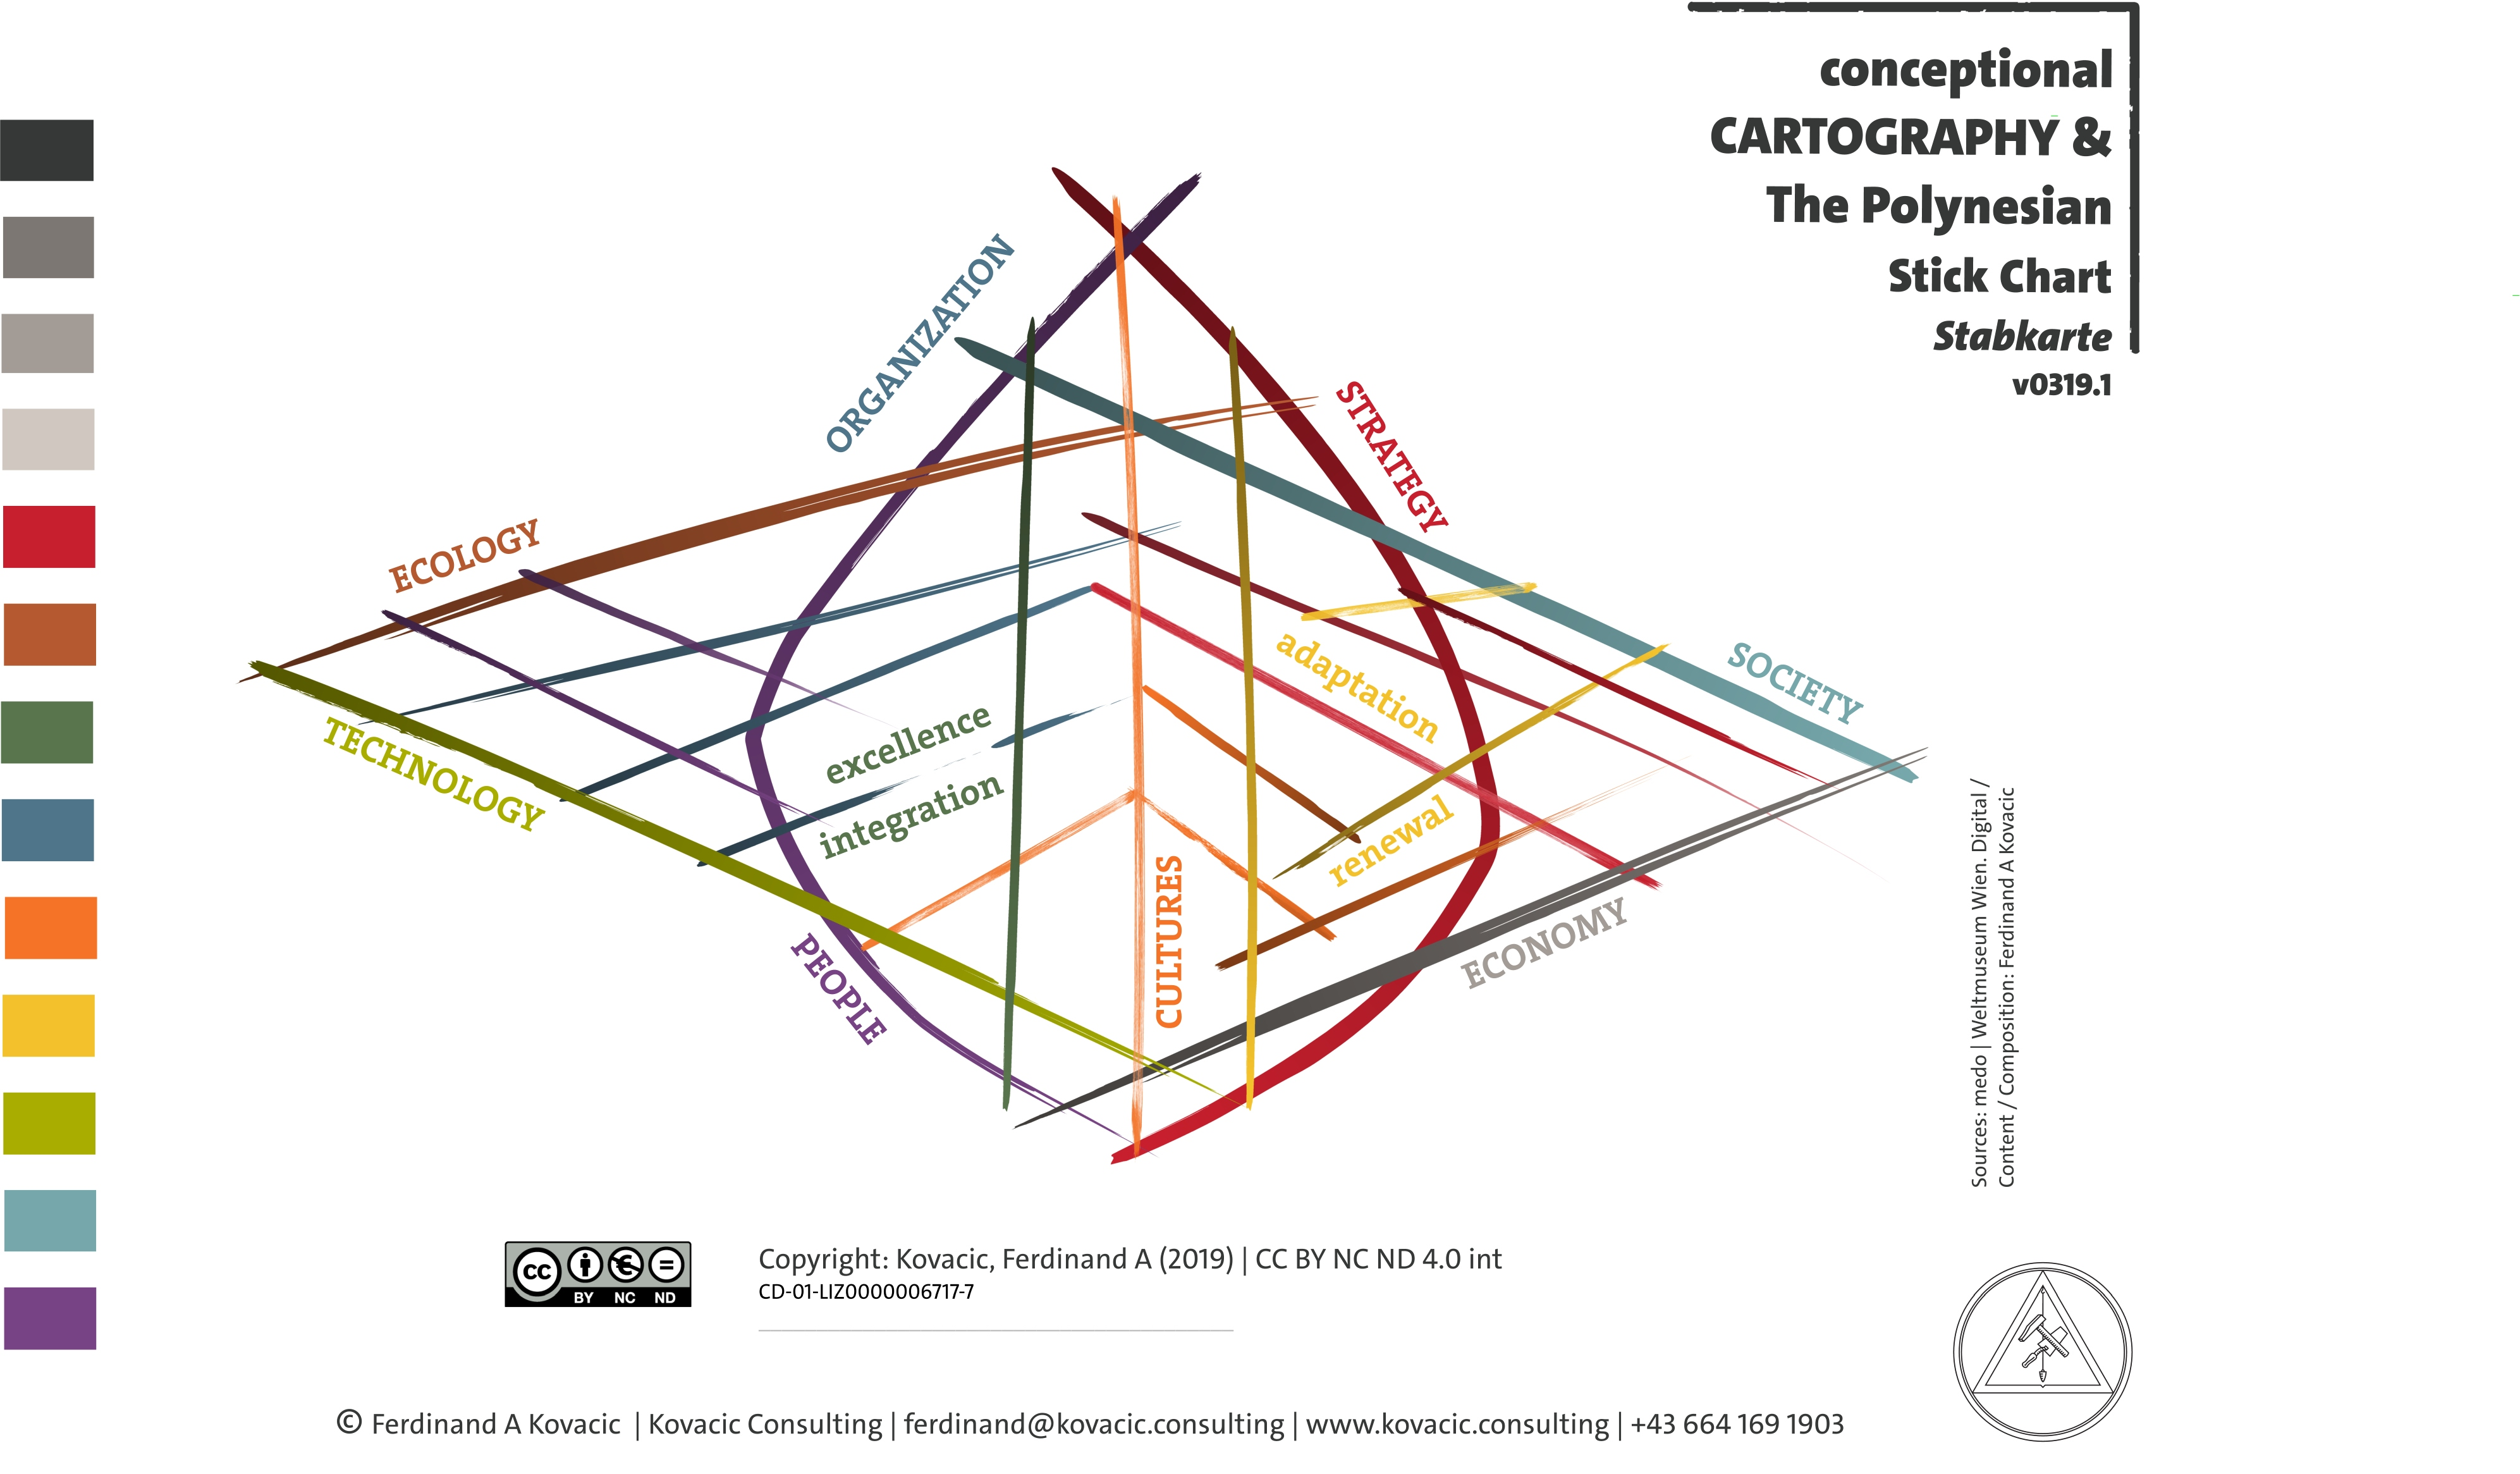 Conceptional cartography. The Polynesian Stick Chart. Stabkarte